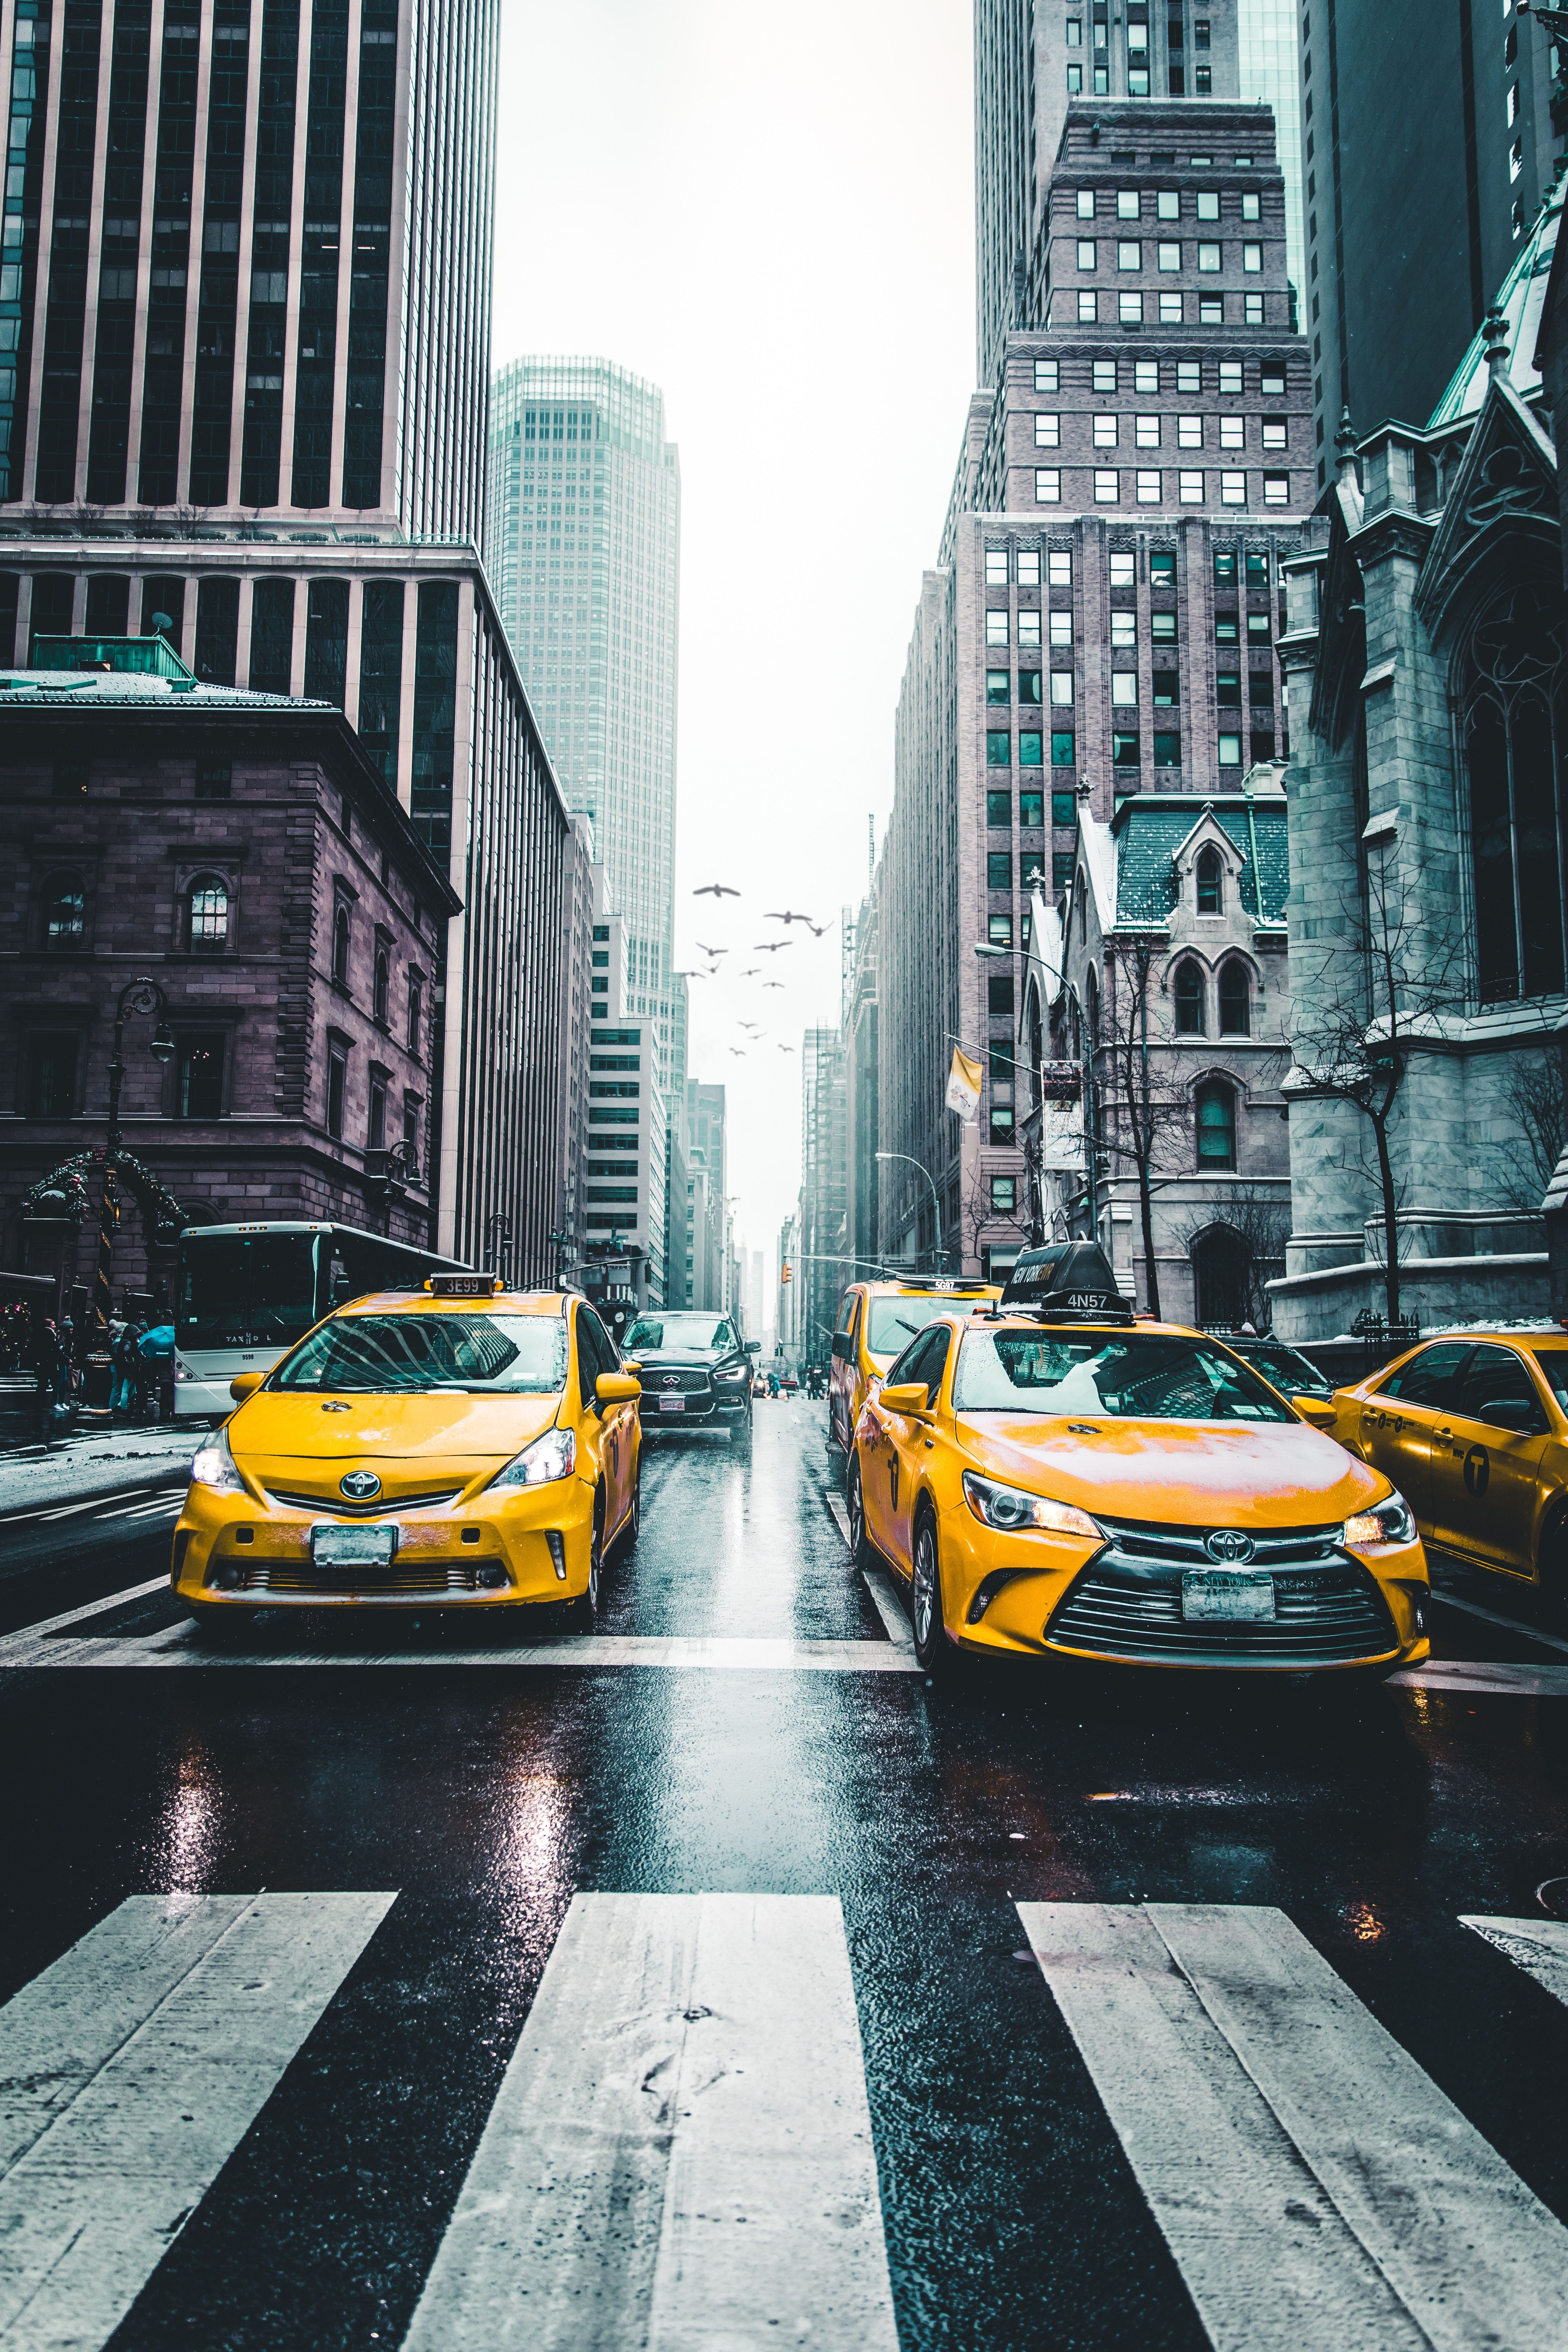 Yellow Taxis In Central New York City Wallpaper Photo Street Photography